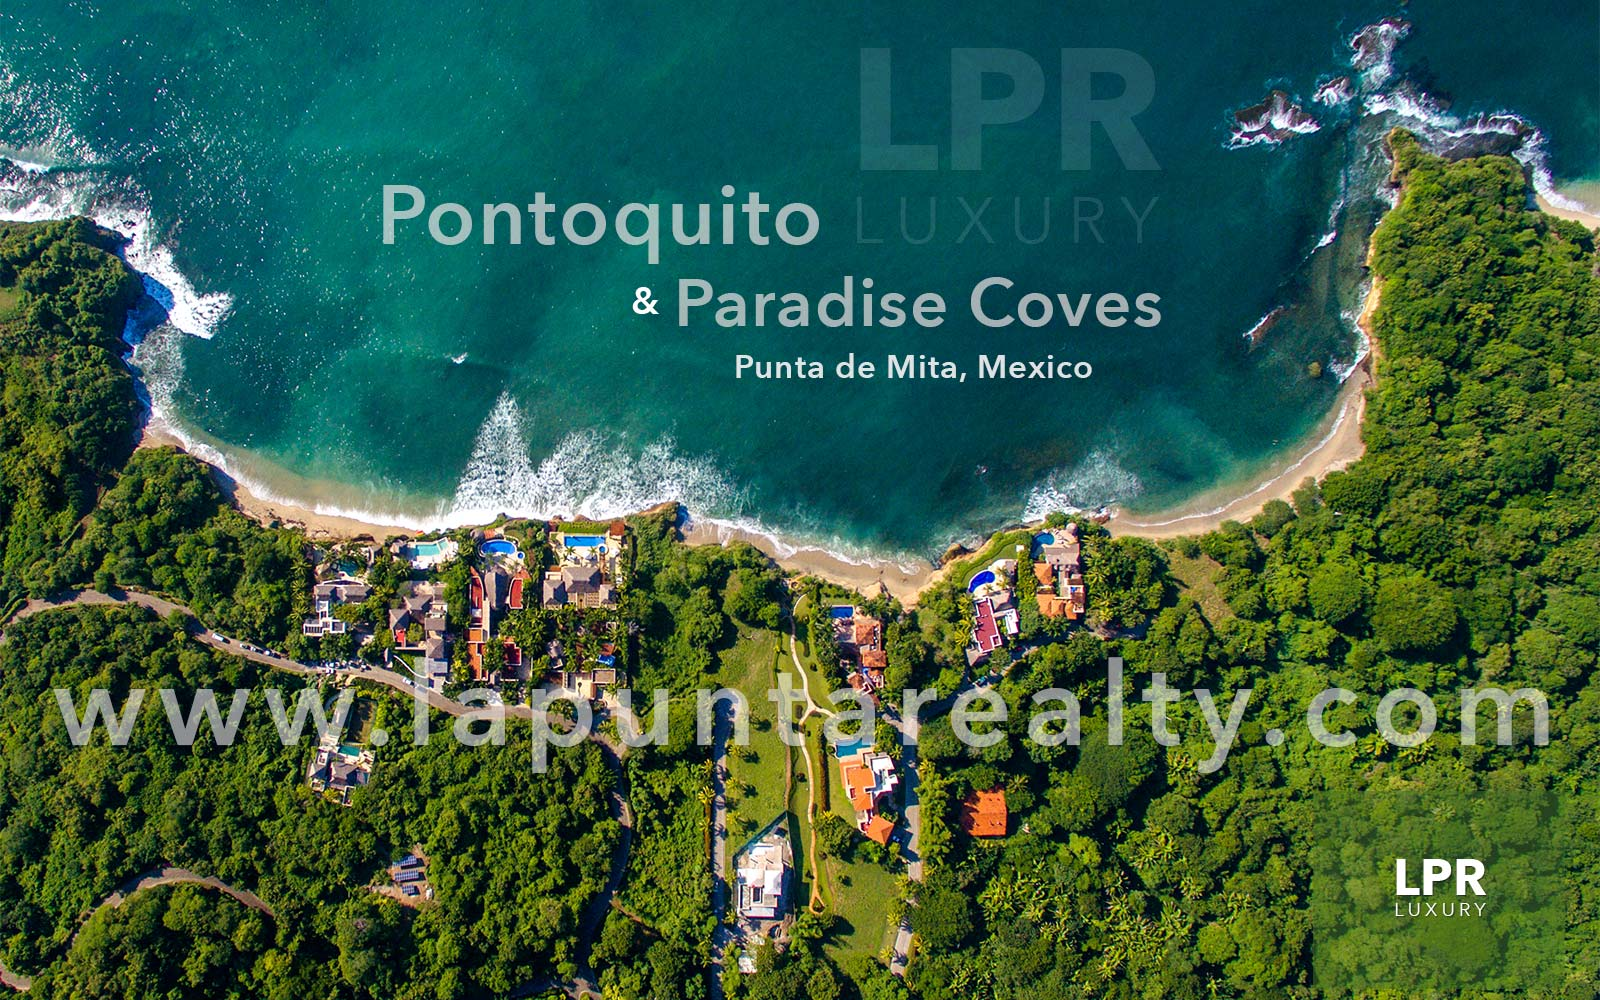 Pontoquito - Paradise Coves